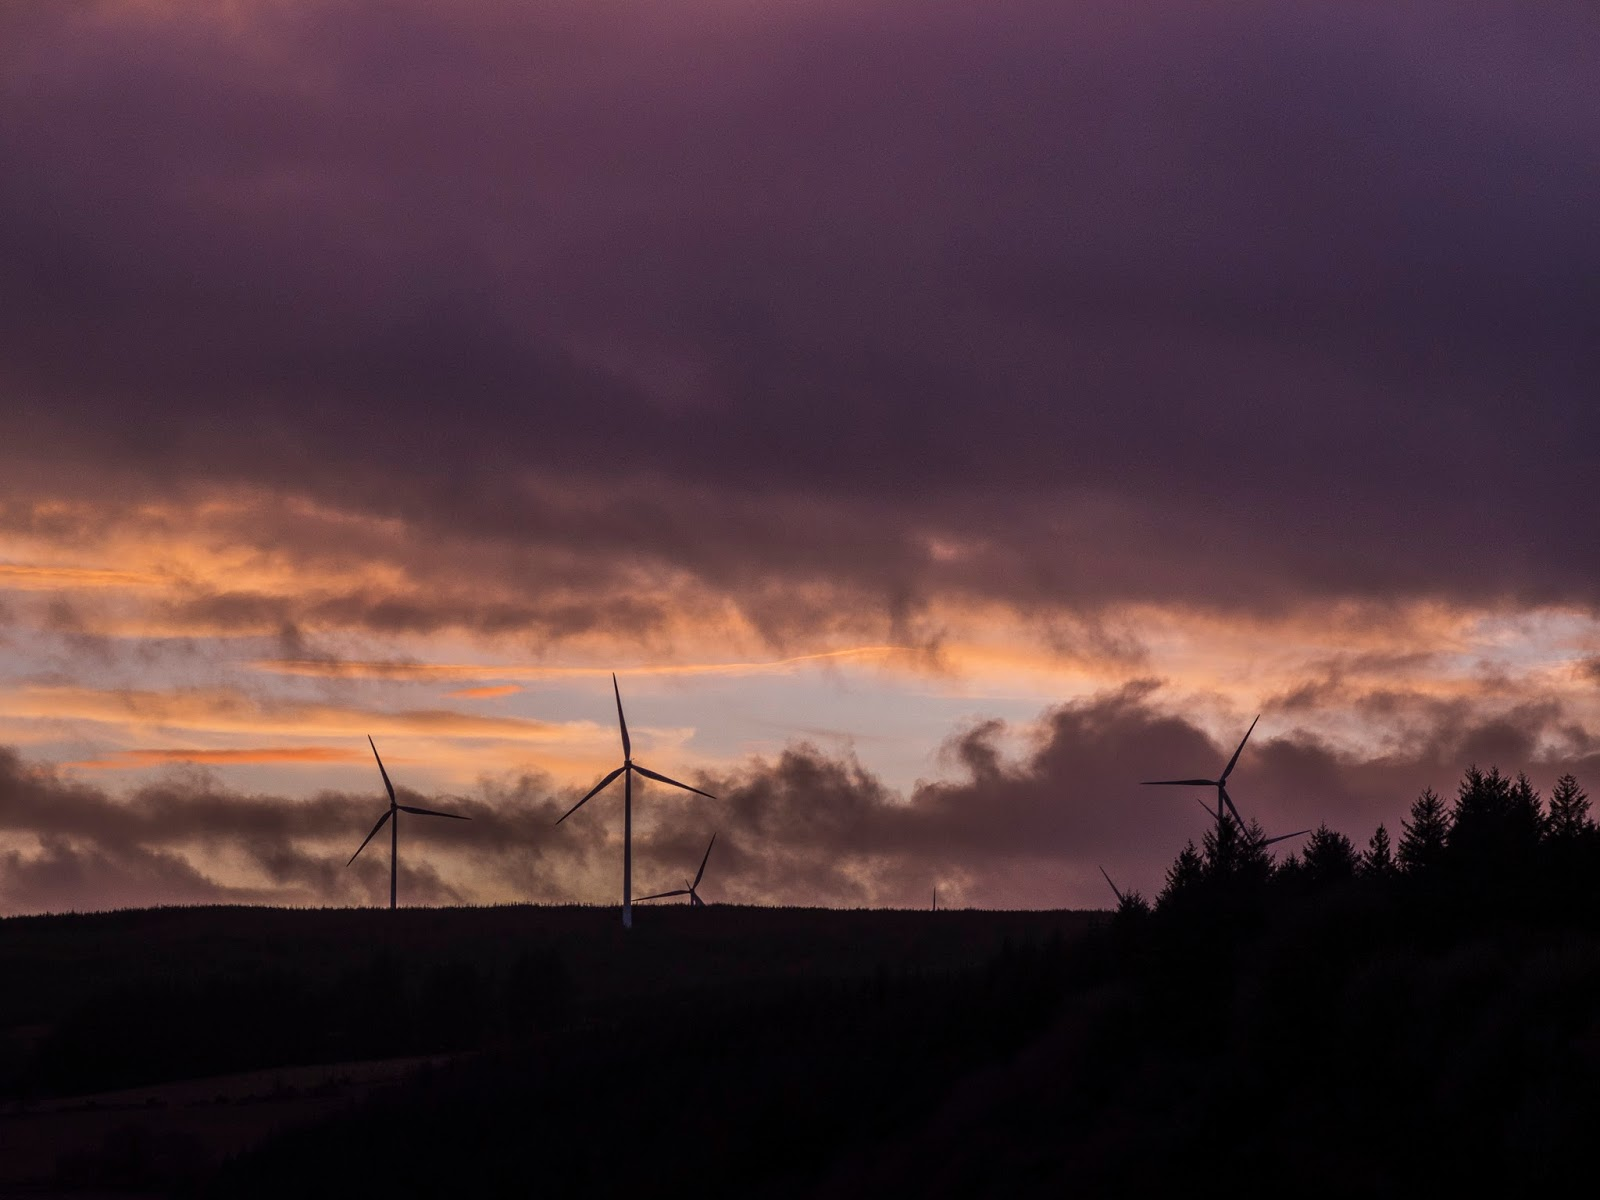 Windmills on a hill in the Boggeragh Mountains in North Cork with dramatic sunset clouds.